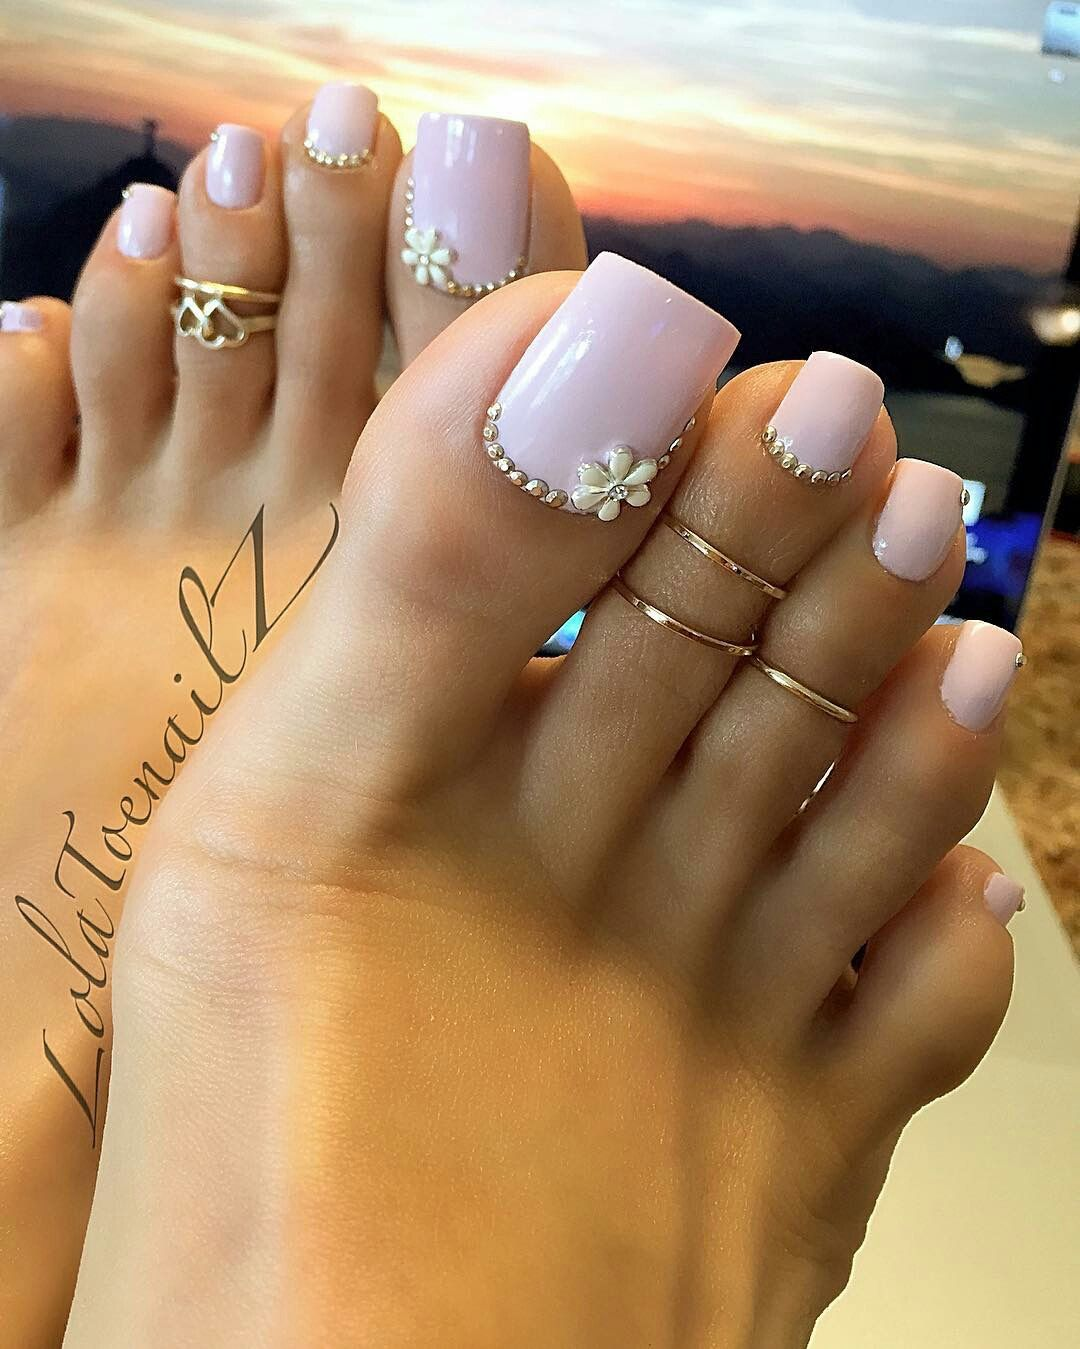 Pin by Elaine Ey on Nails ideas | Pinterest | Pedicures, Pedi and ...